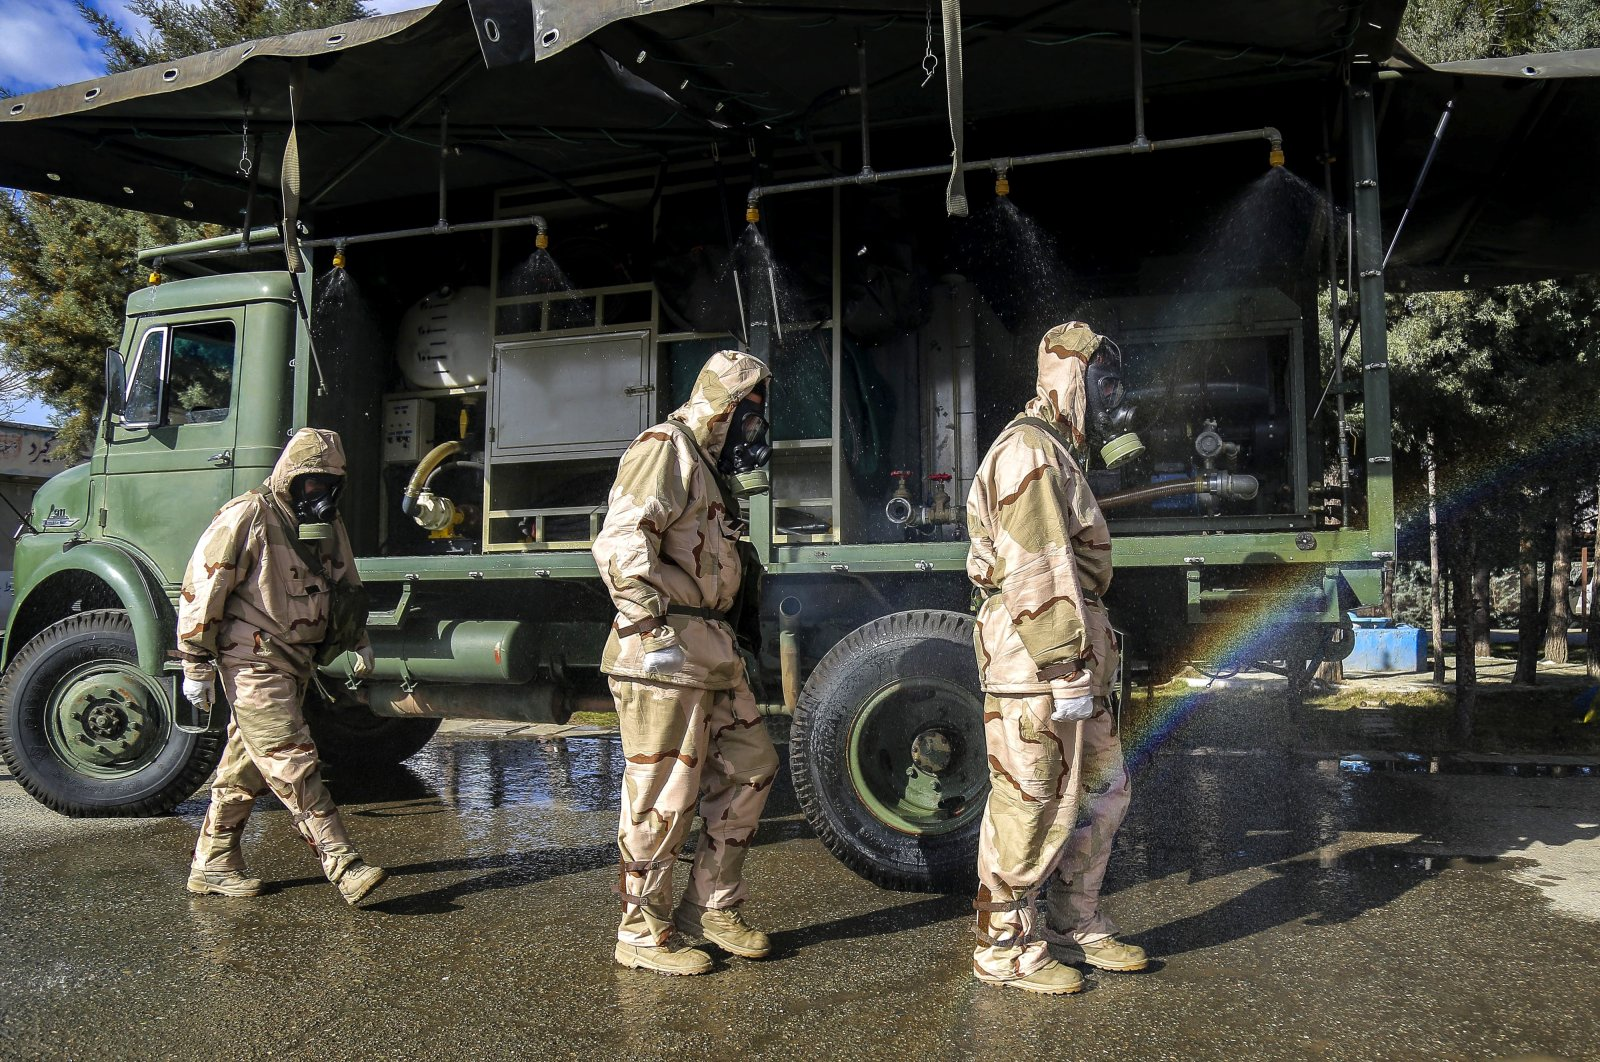 In this Sunday, March 1, 2020 photo, Revolutionary Guard members take part in disinfecting the city to help prevent the spread of the new coronavirus in Sanandaj, western Iran. (Tasnim News Agency via AP)